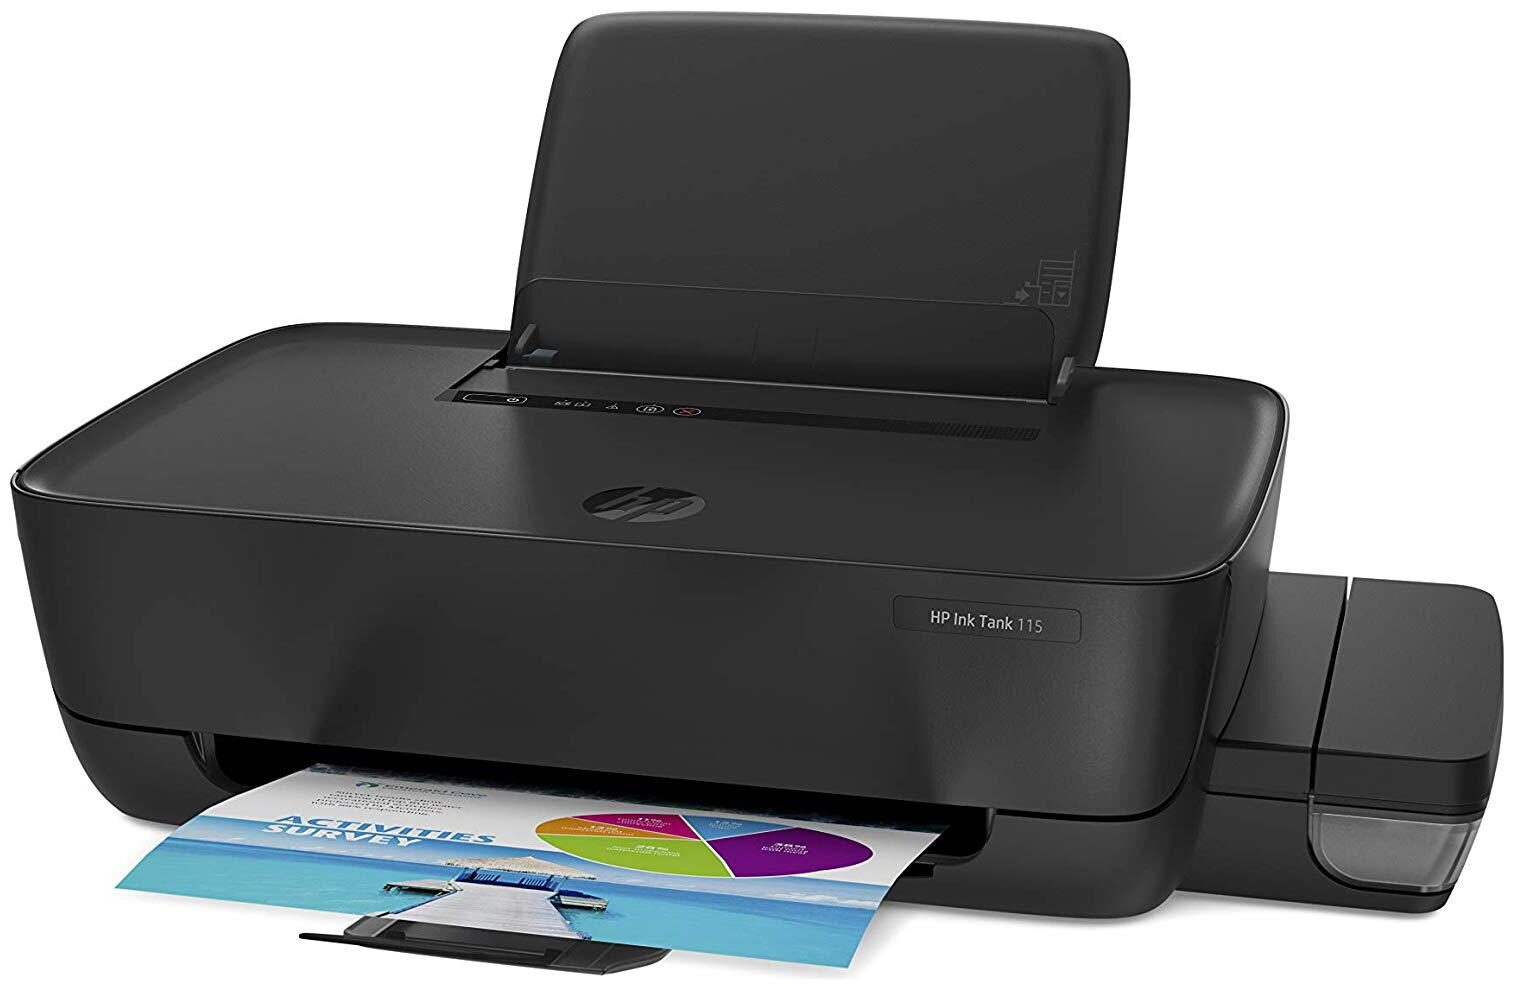 HP 115 | Best Printer for Home Use